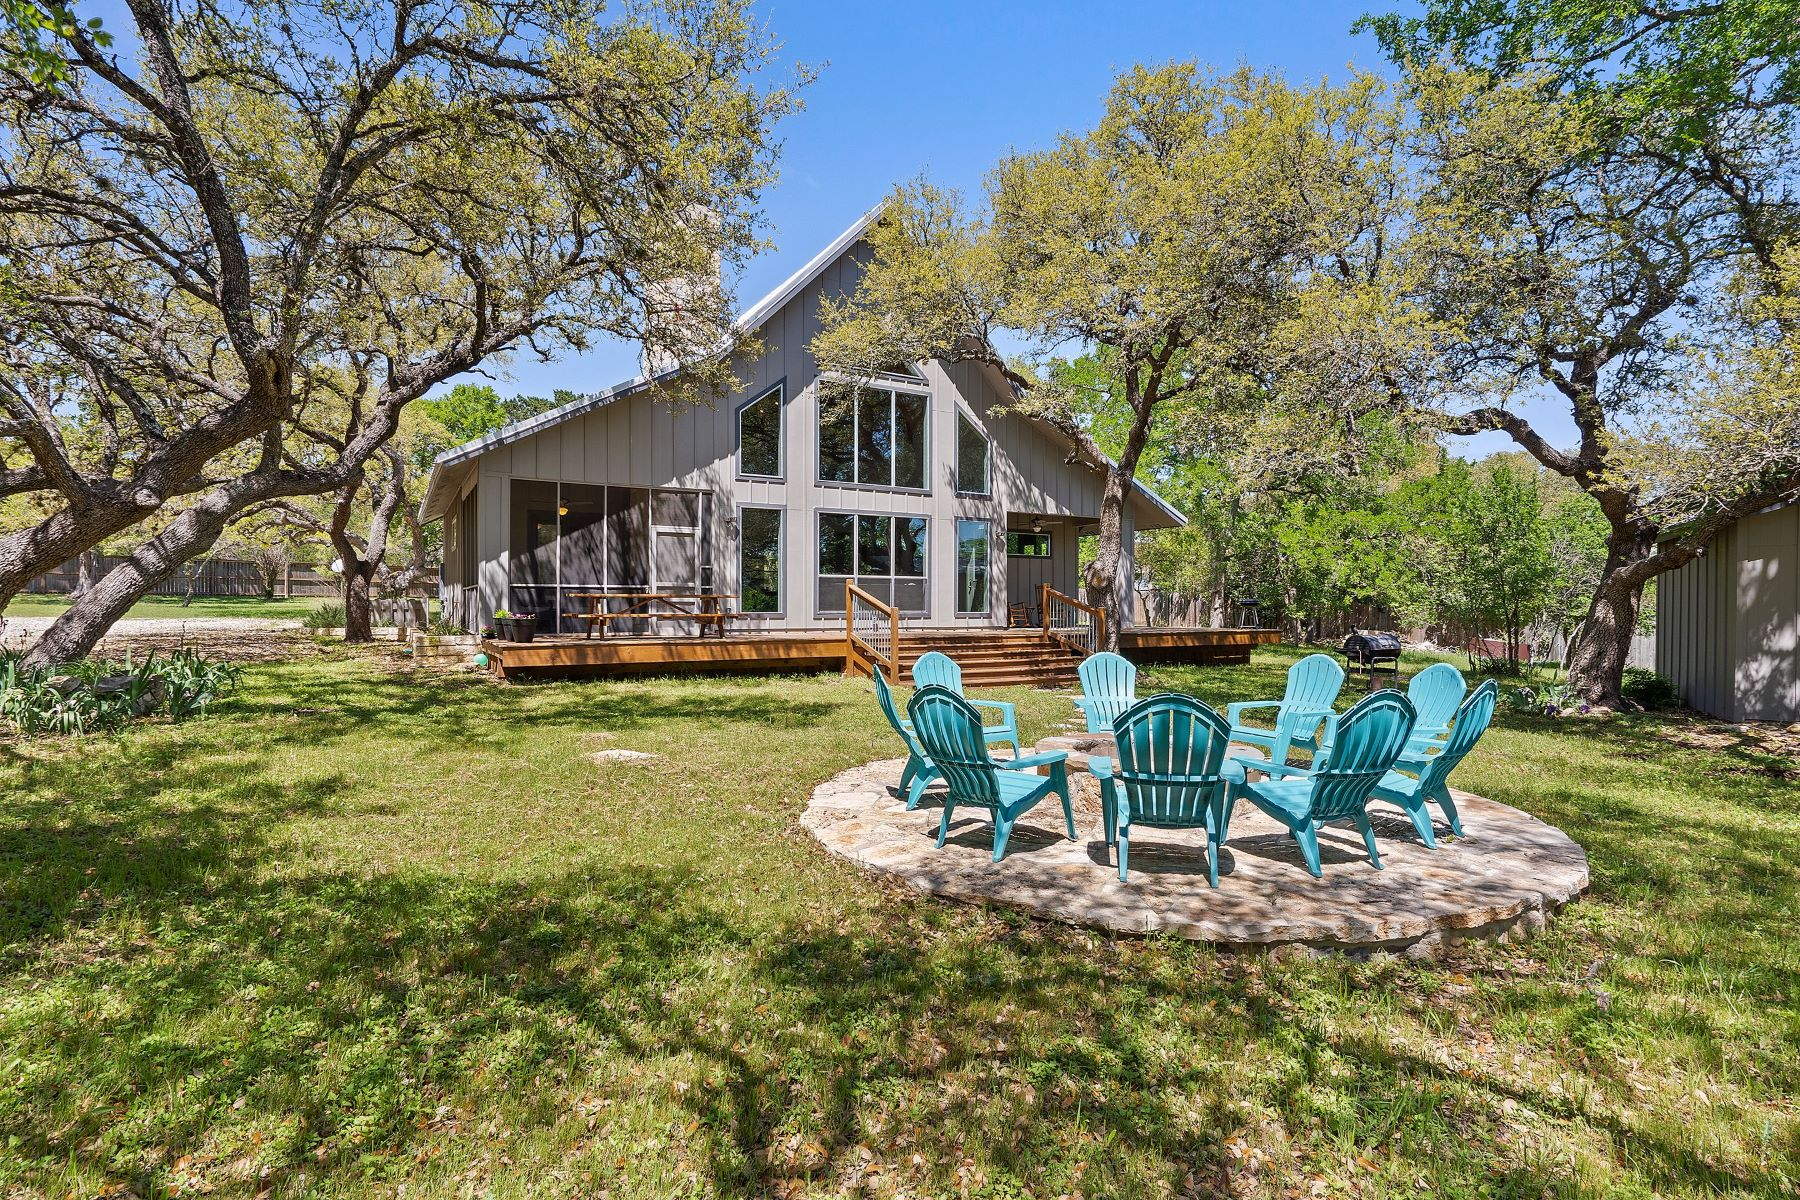 Single Family Homes for Sale at 134 Narrows Road, Blanco, TX 78606 134 Narrows Road Blanco, Texas 78606 United States